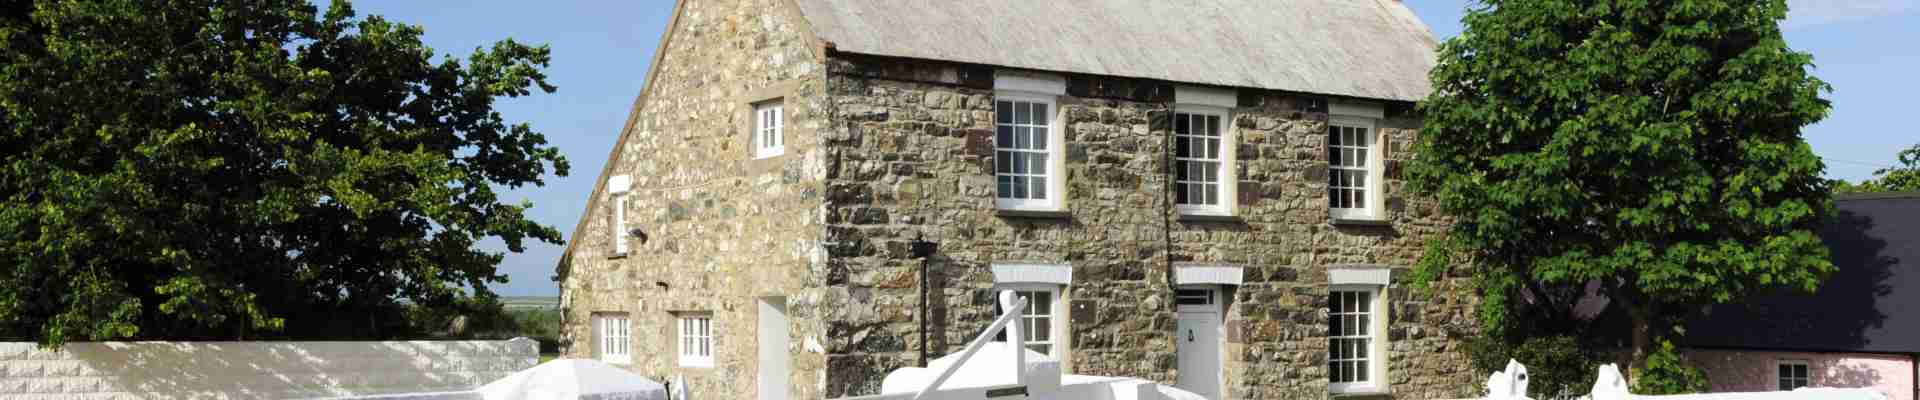 Cerbid Holiday Cottages